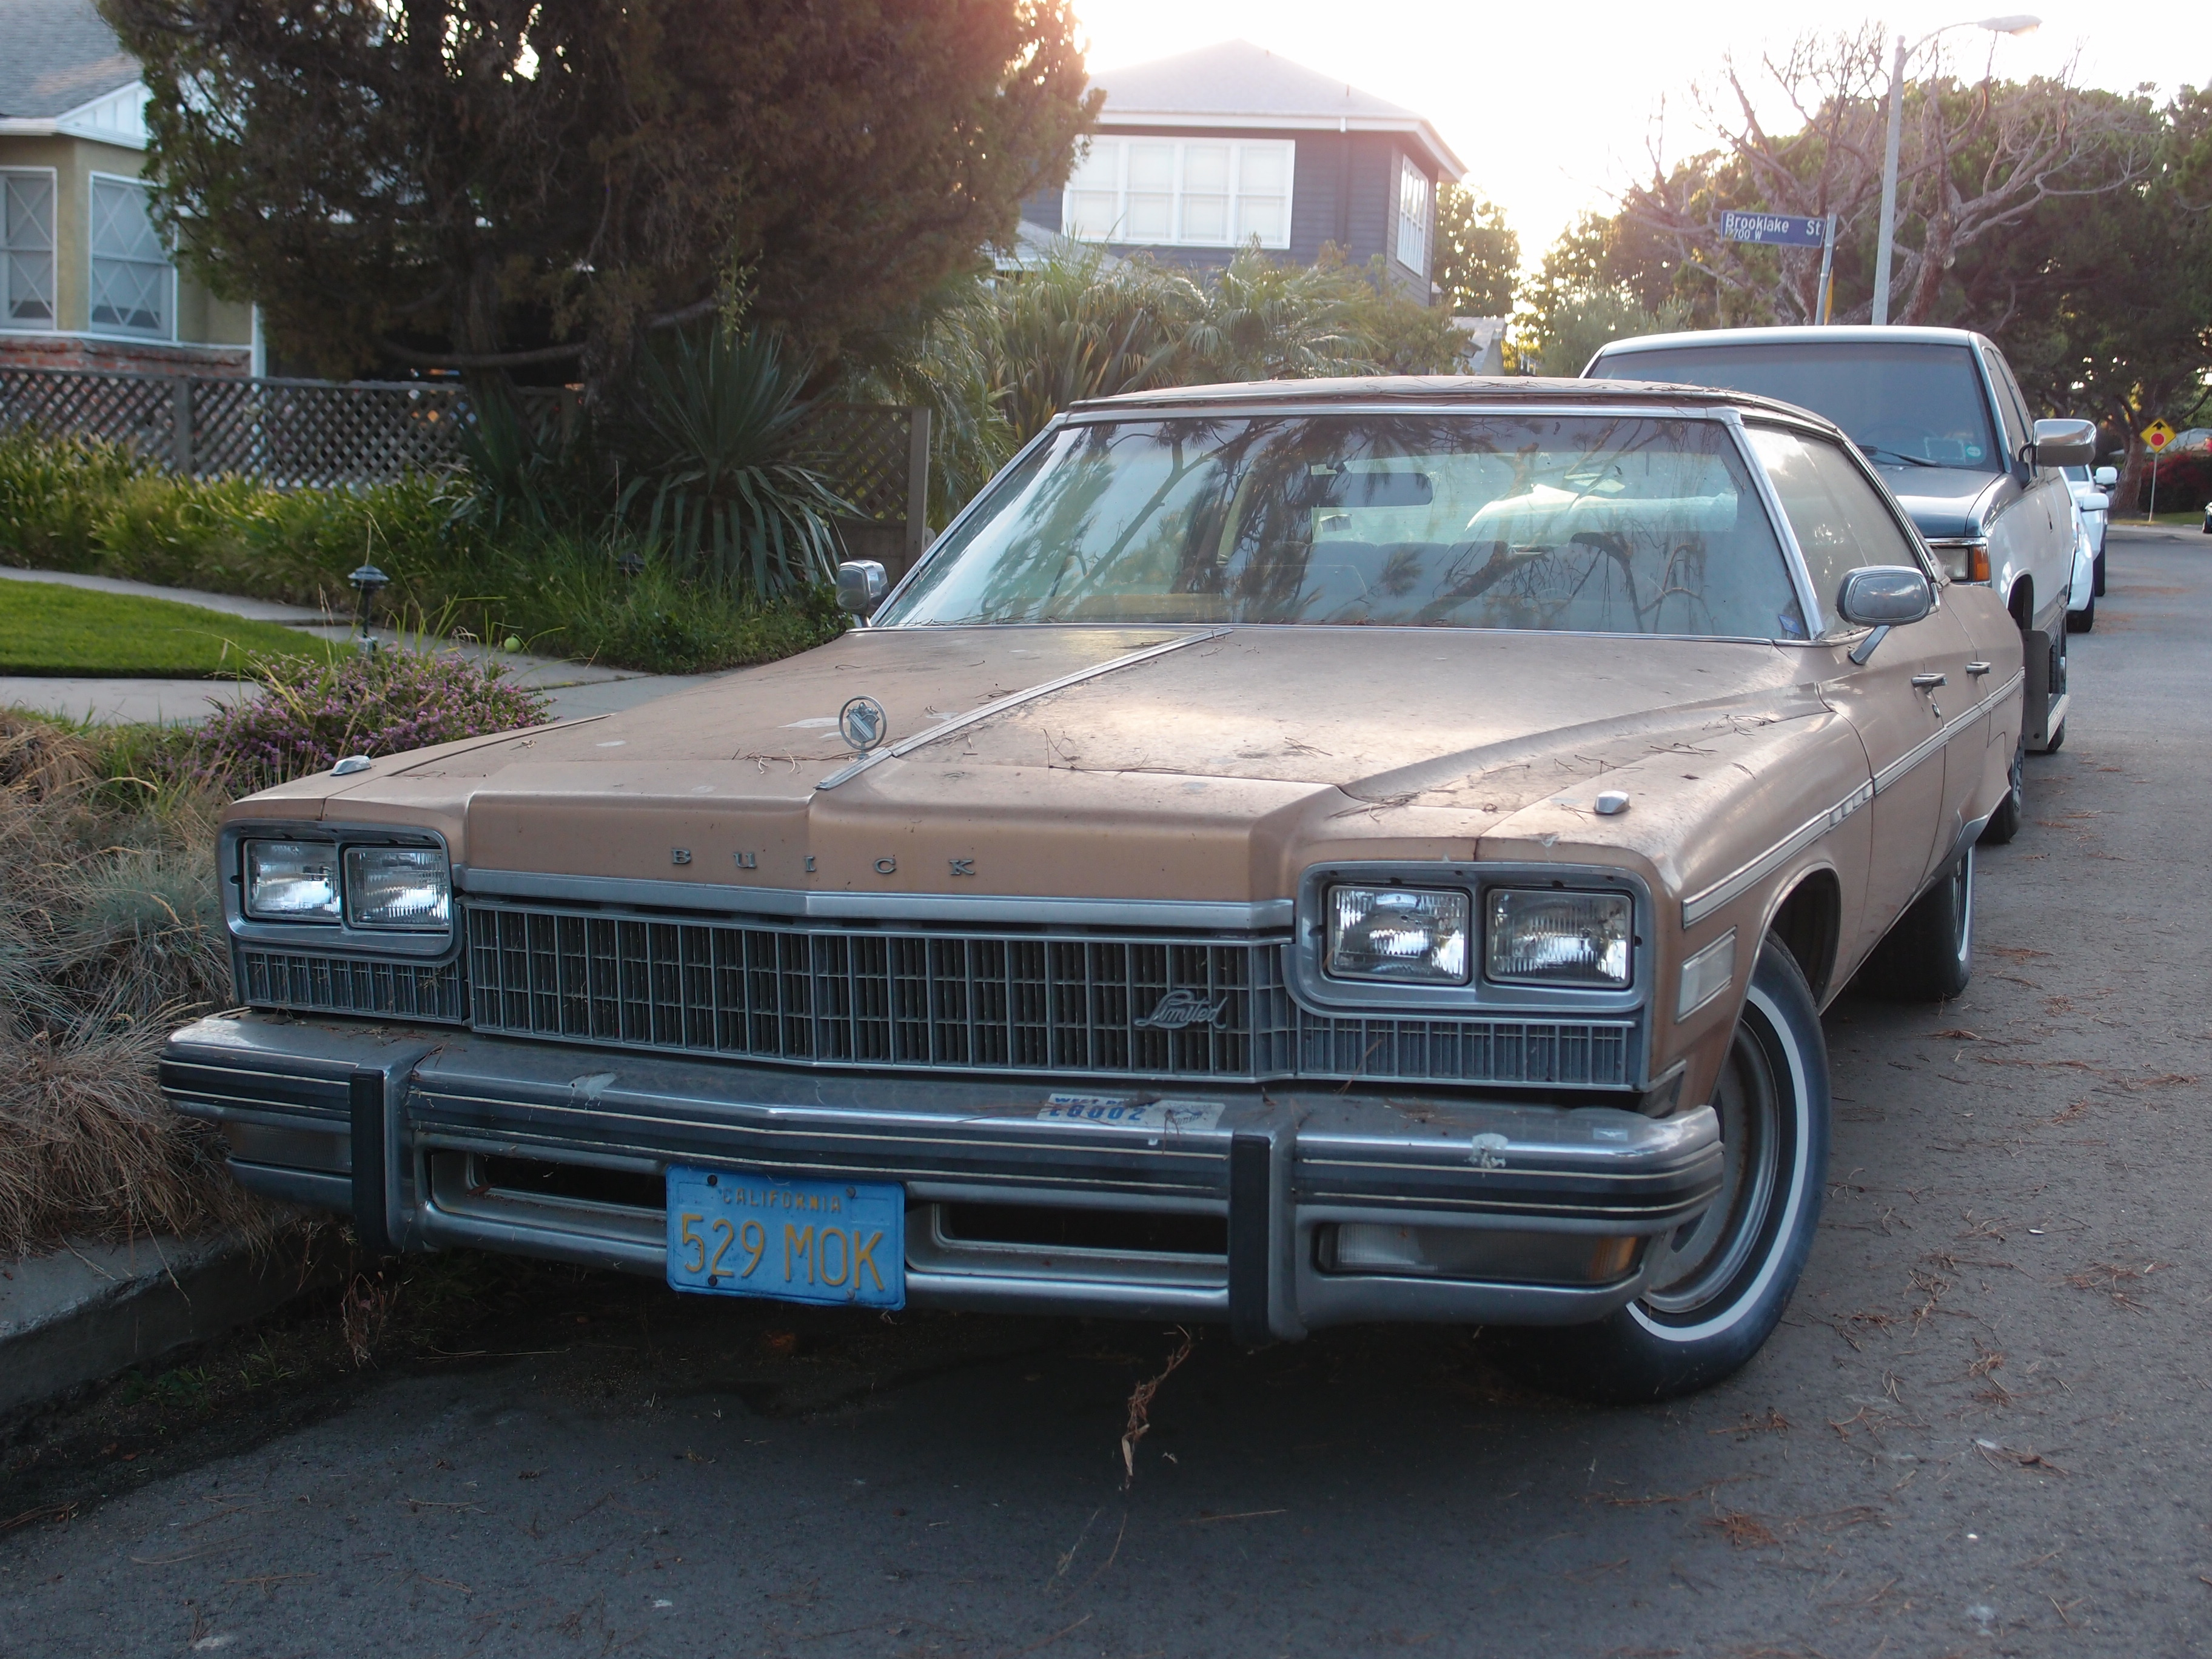 P on 1975 Buick Lesabre